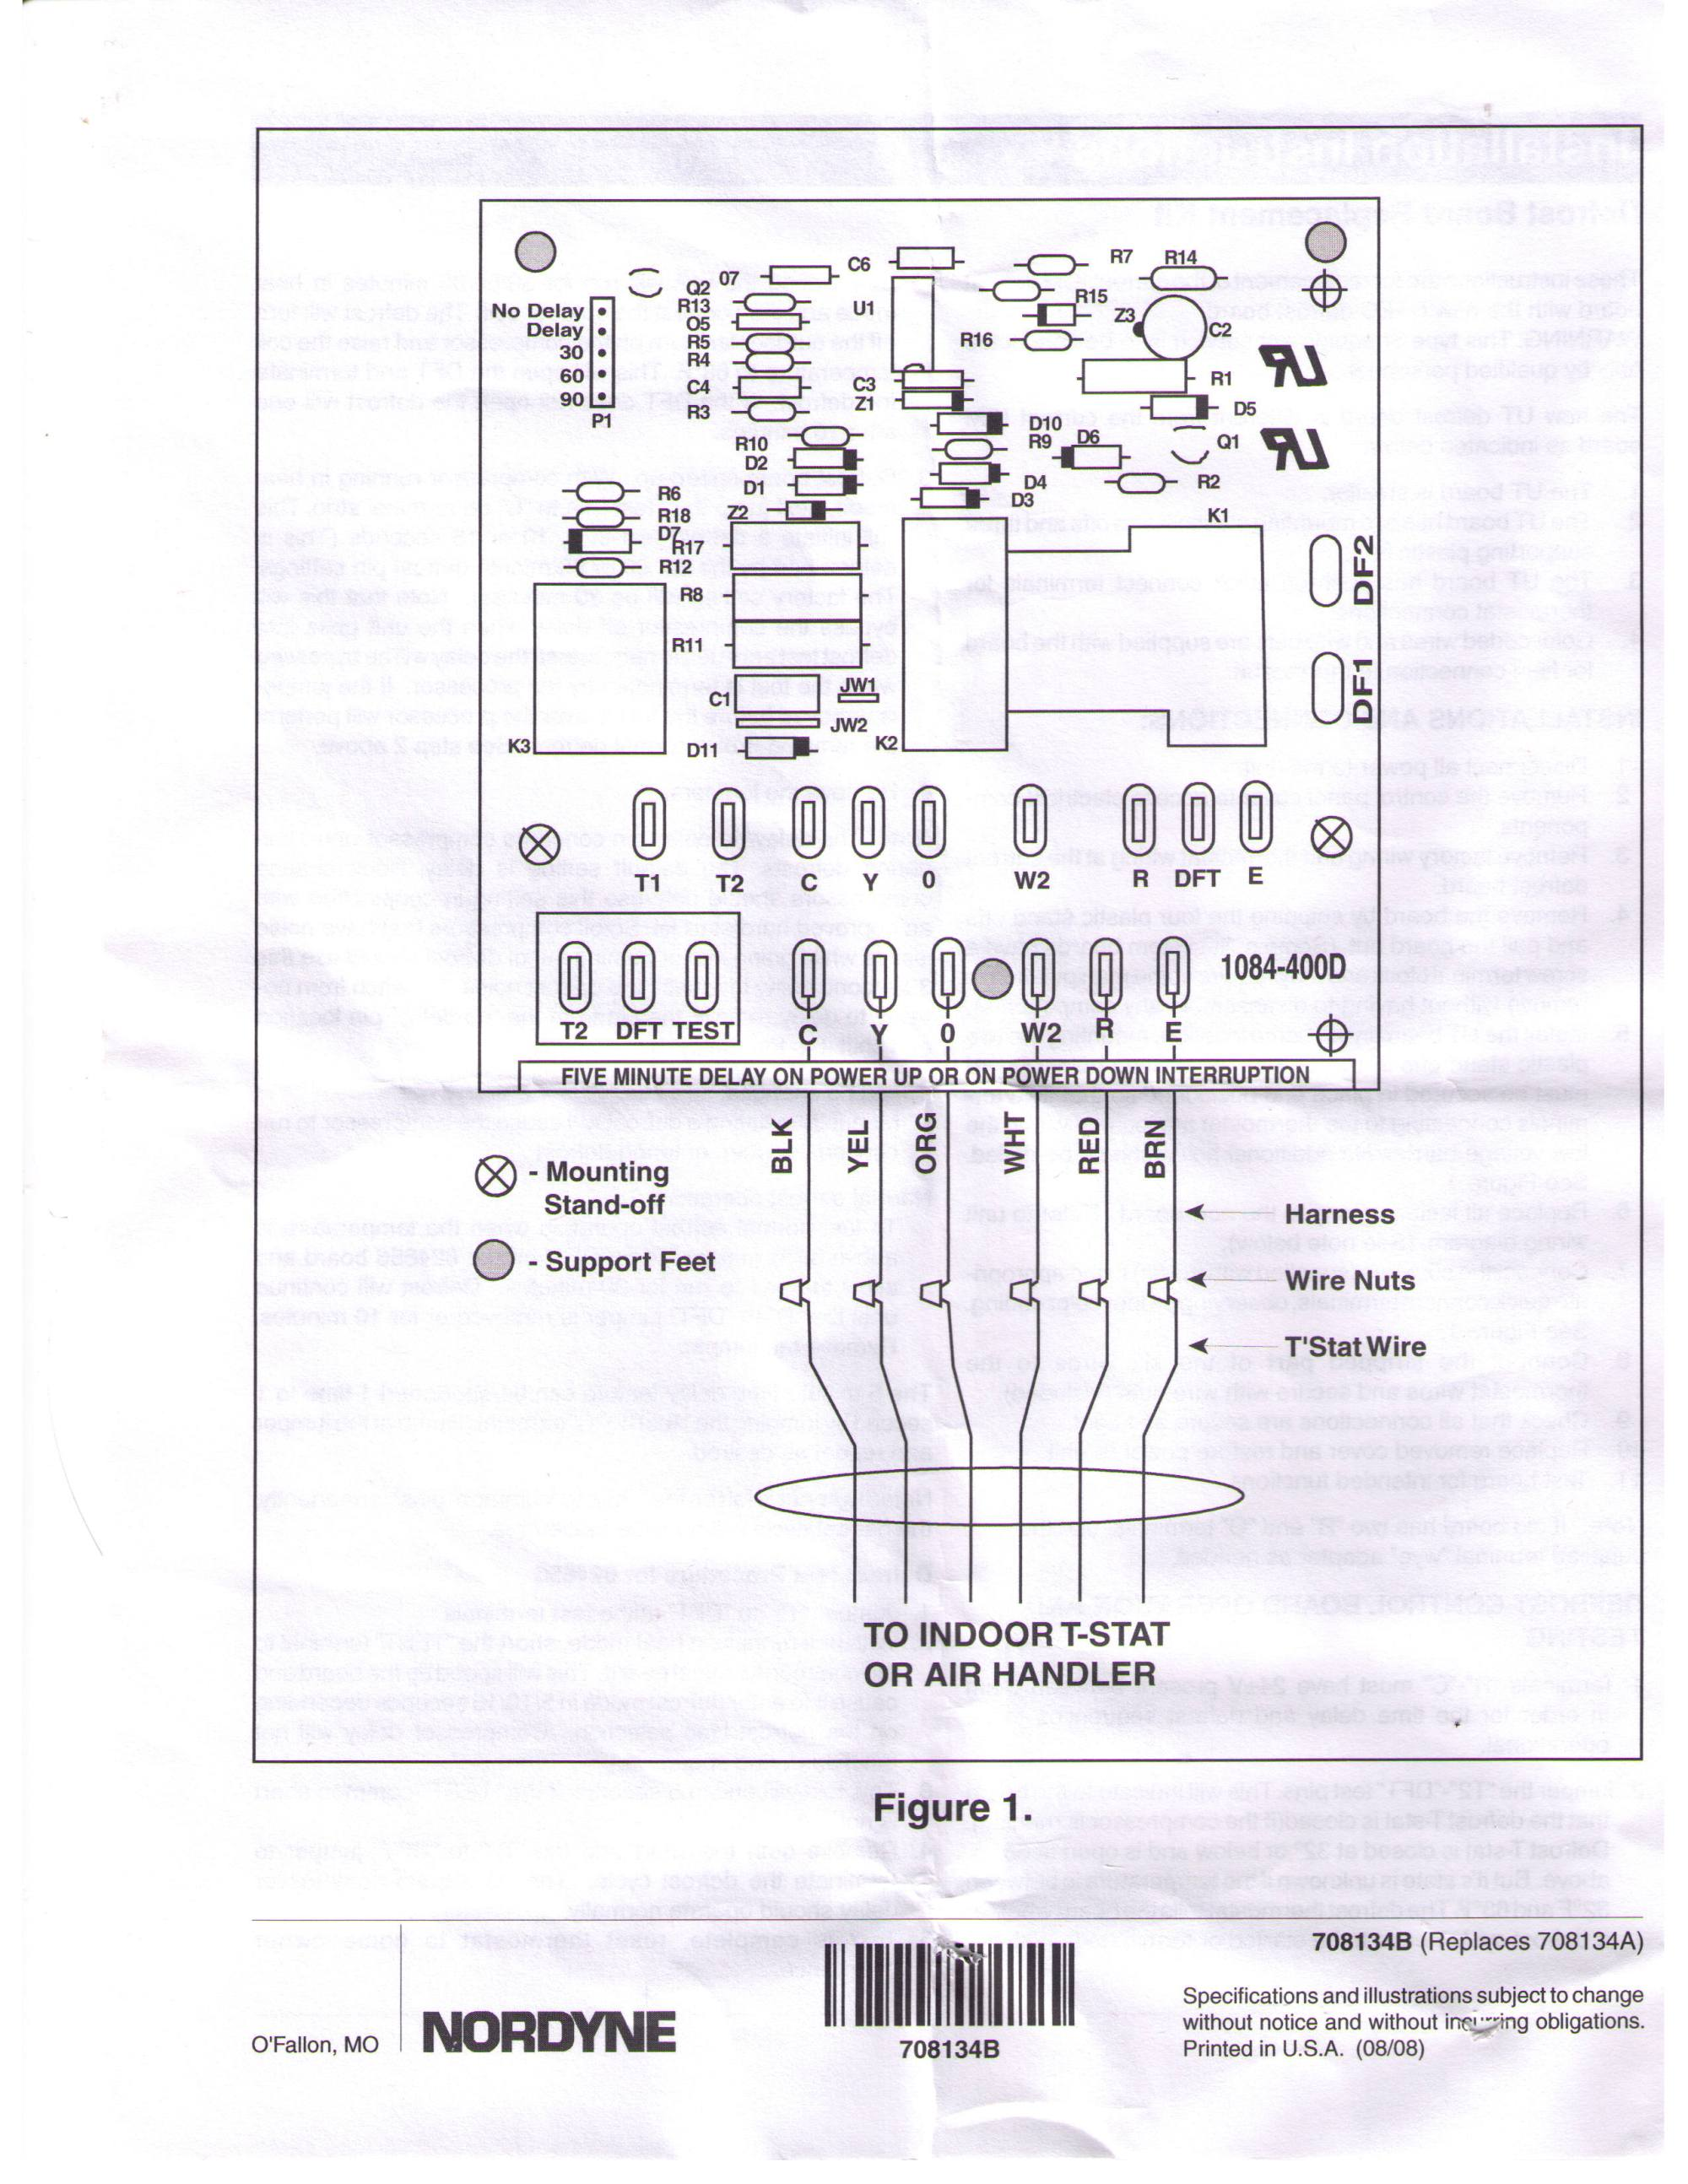 hight resolution of nordyne condenser wiring diagram 32 wiring diagram electric furnace wiring diagrams e2eb 015hb nordyne furnace wiring diagram